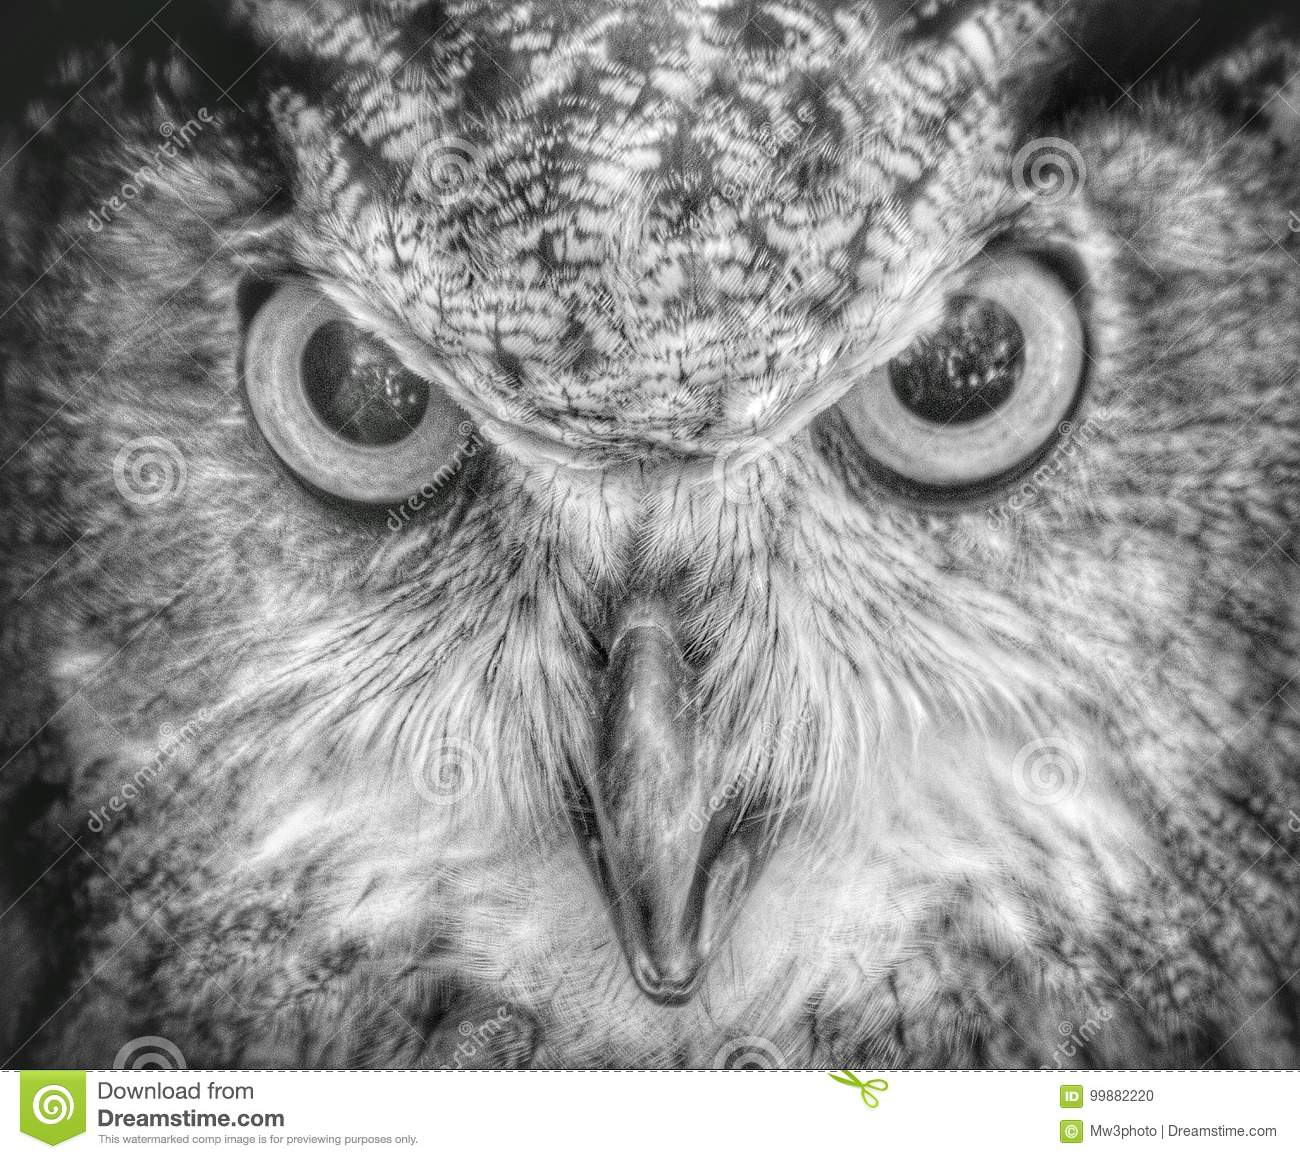 Owl Be Watching You Stock Photo Image Of Beak Starring 99882220